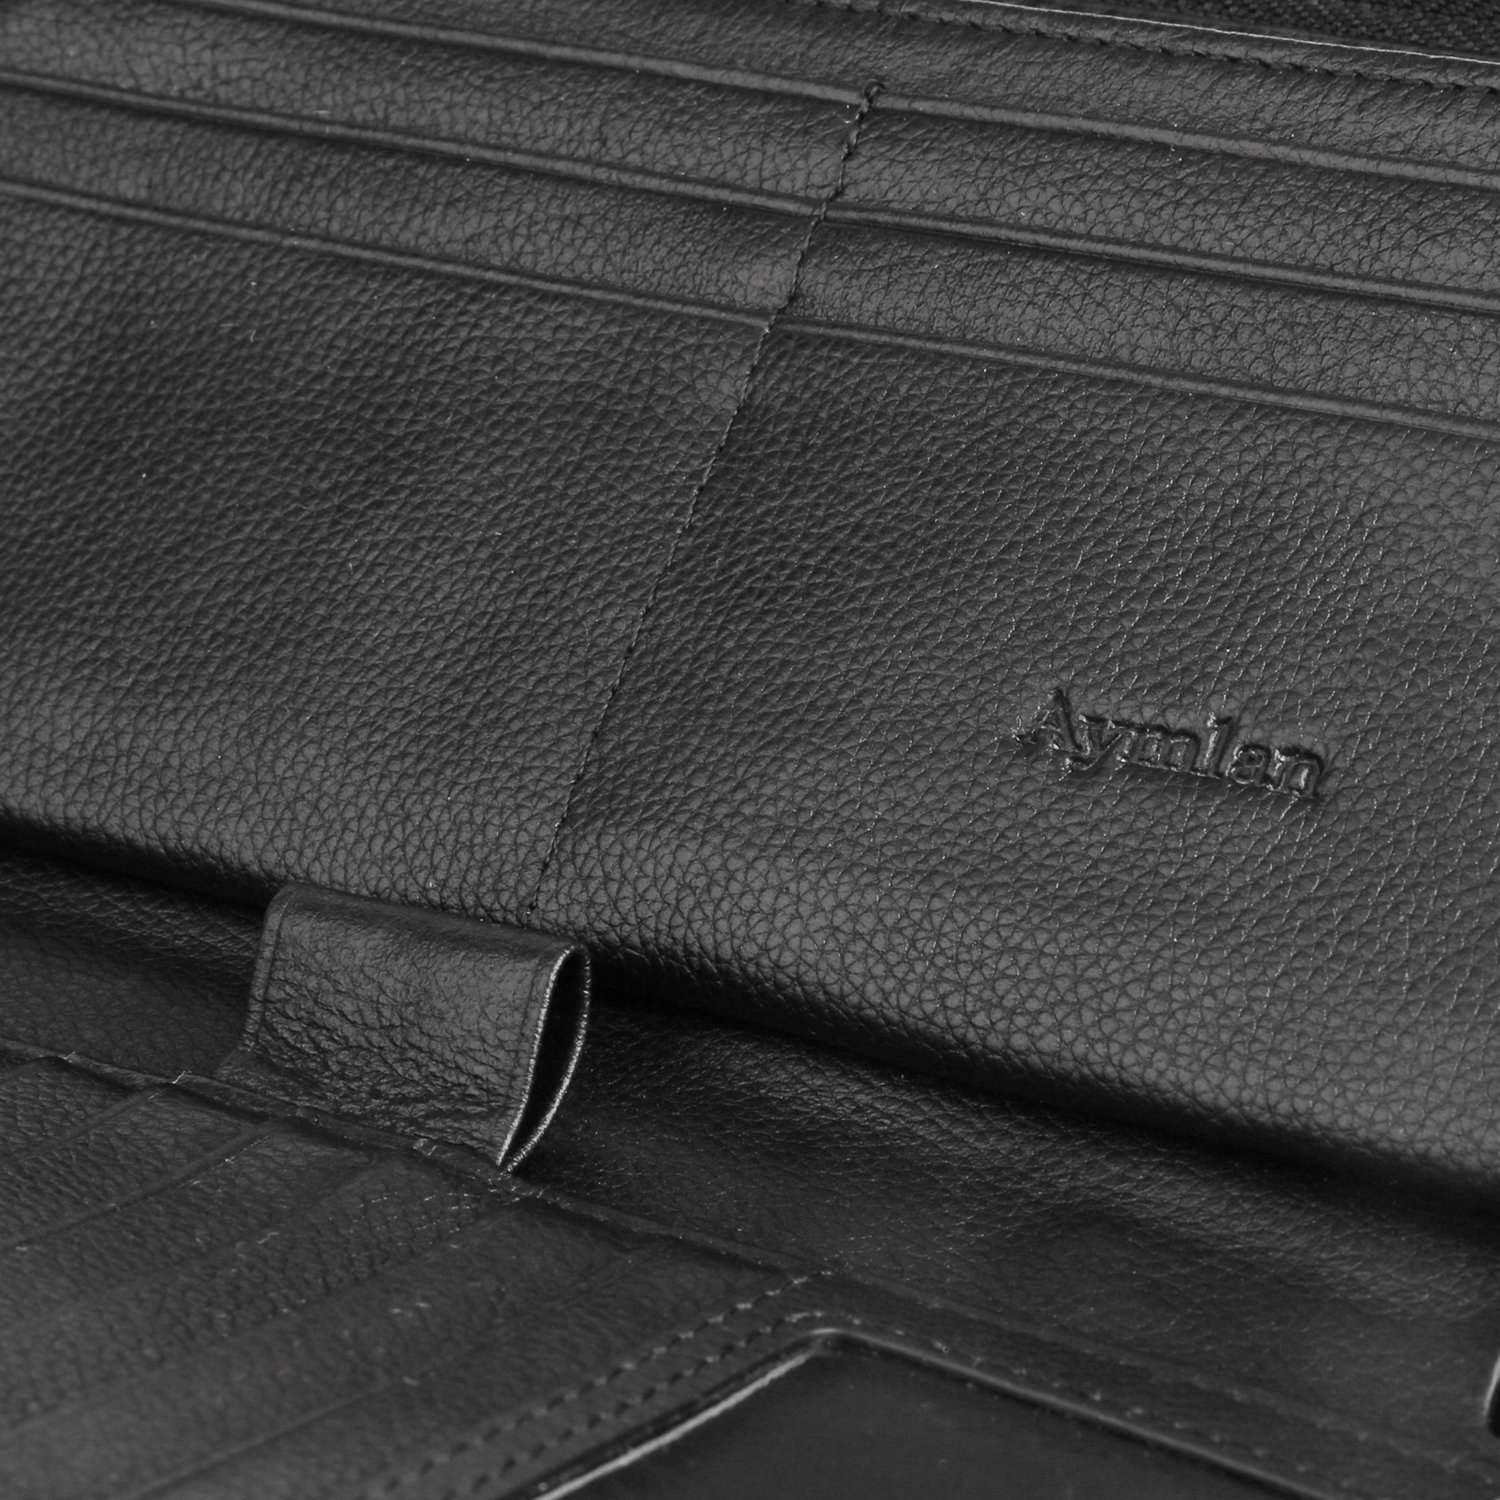 Womens RFID Blocking Wallet Real Leather Zip Around Clutch Large Travel Purse (Black) by Aymlan (Image #7)